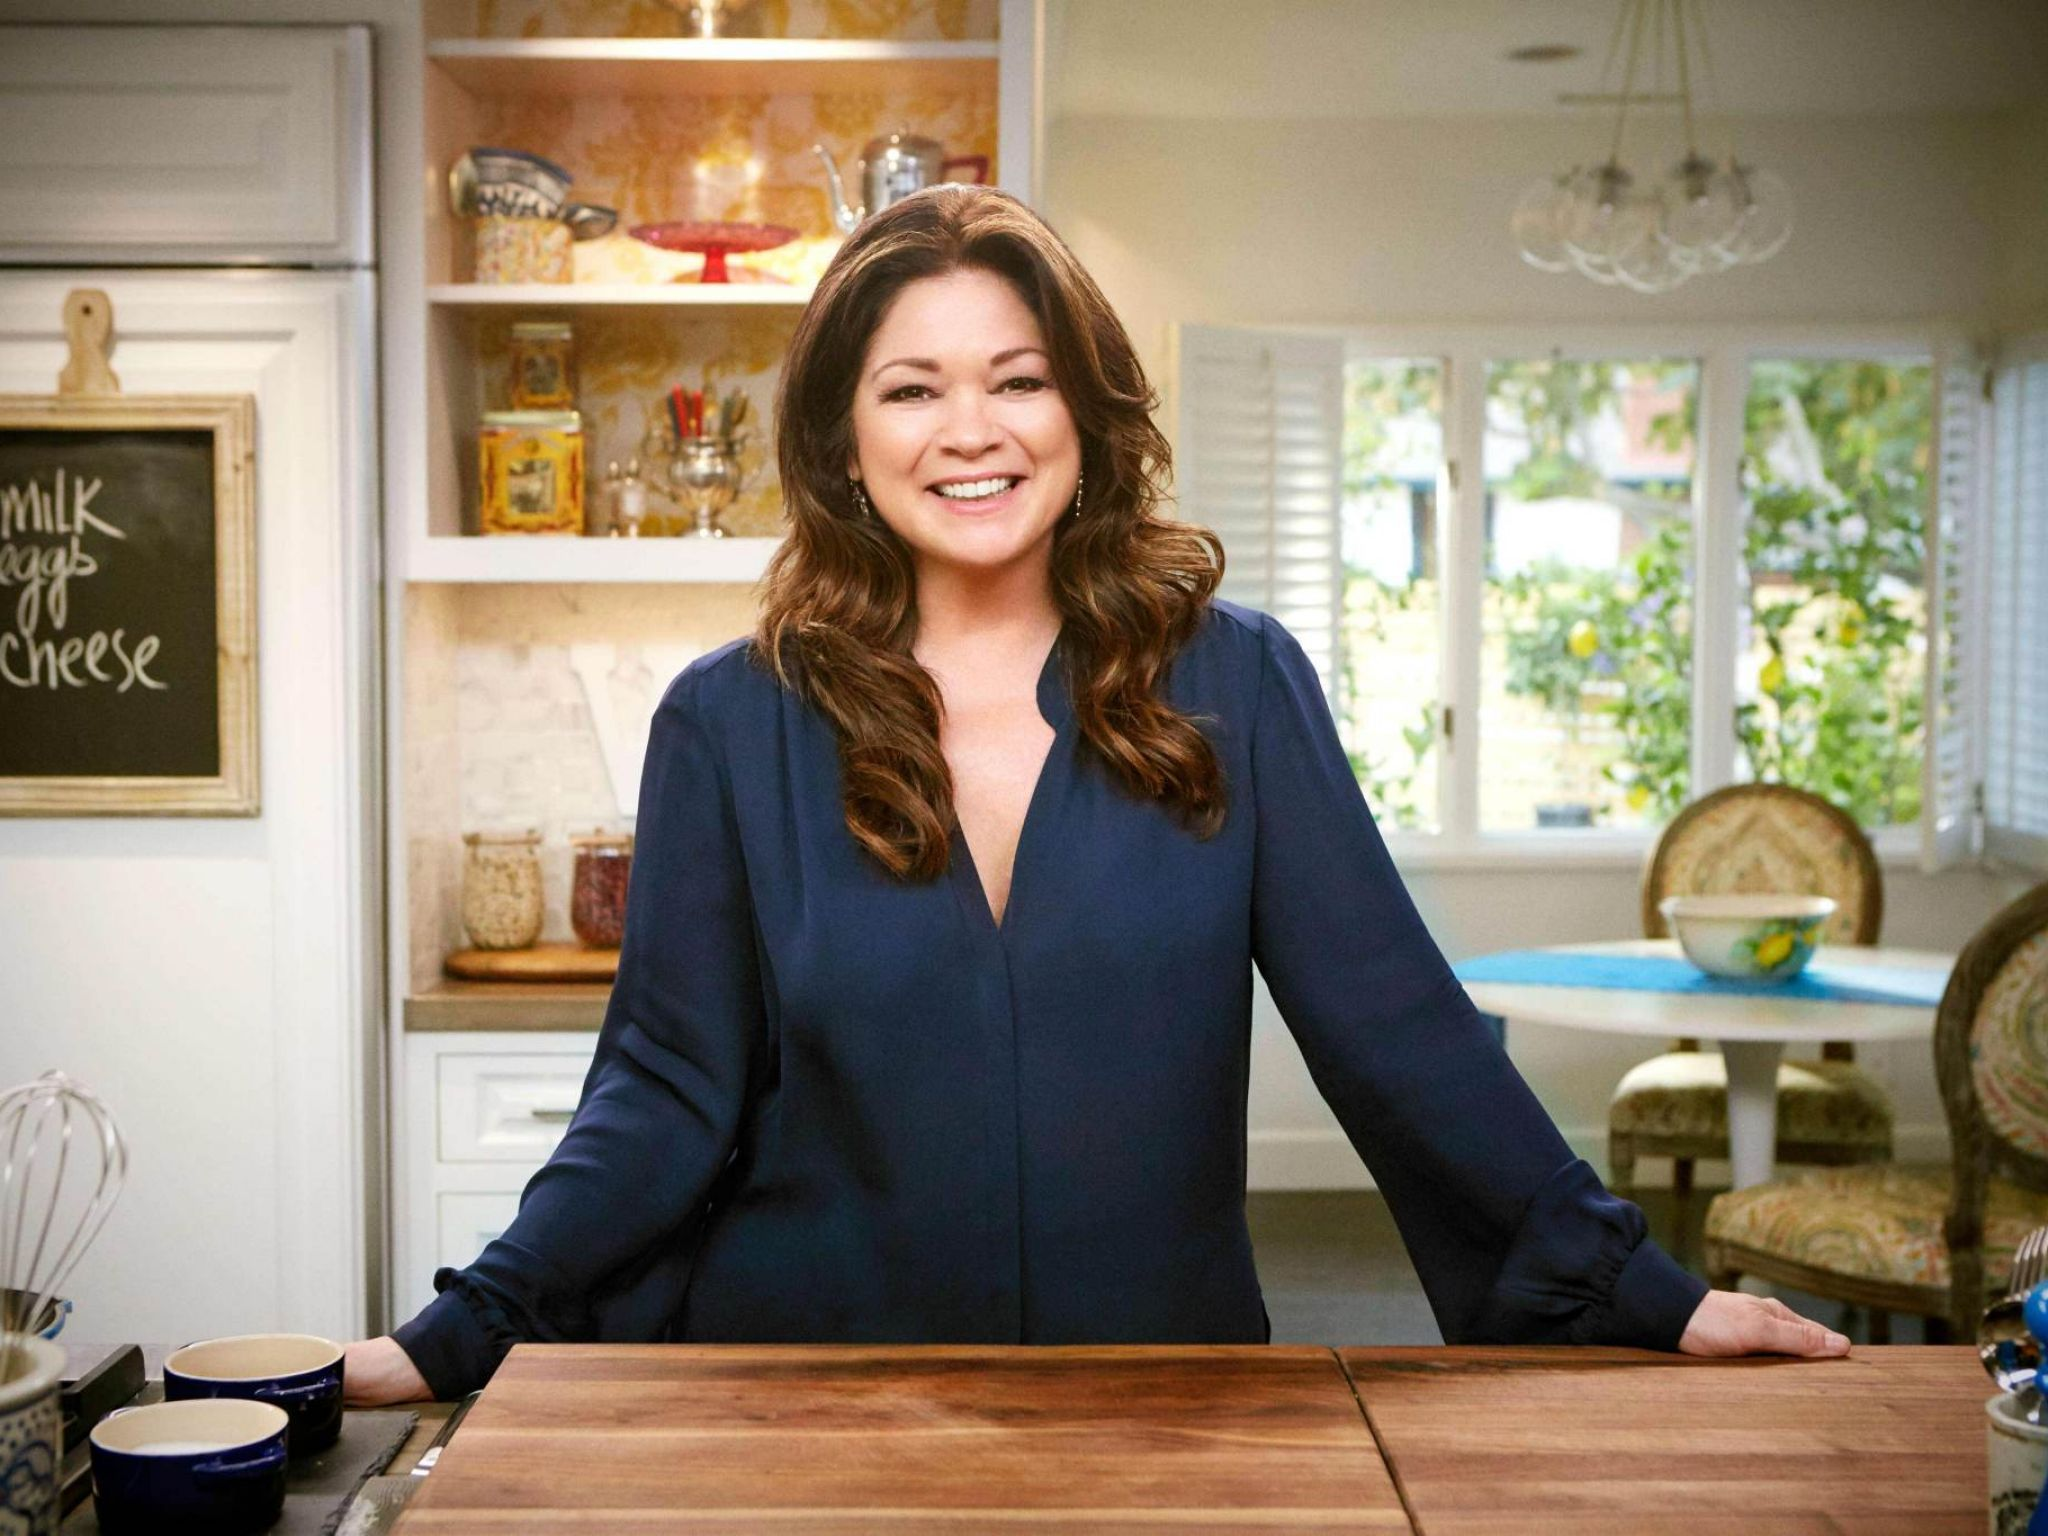 The Competitors Of Food Network S Kids Baking Championship Kids Baking Championship Baking Championship Baking With Kids